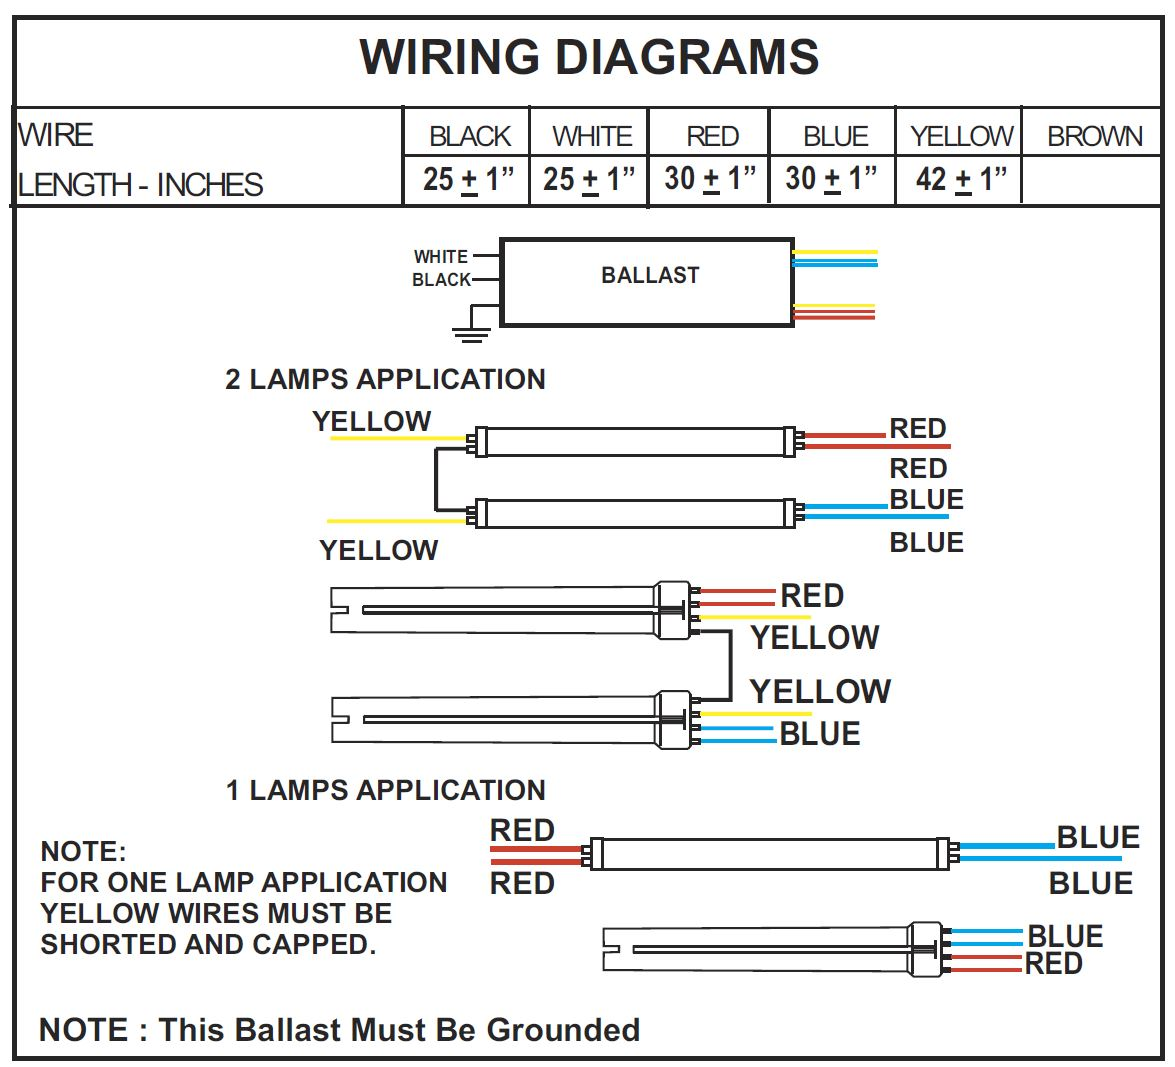 hight resolution of john deere l110 wiring diagram lighting wiring diagram specialtiesjohn deere l110 wiring diagram lighting best wiring